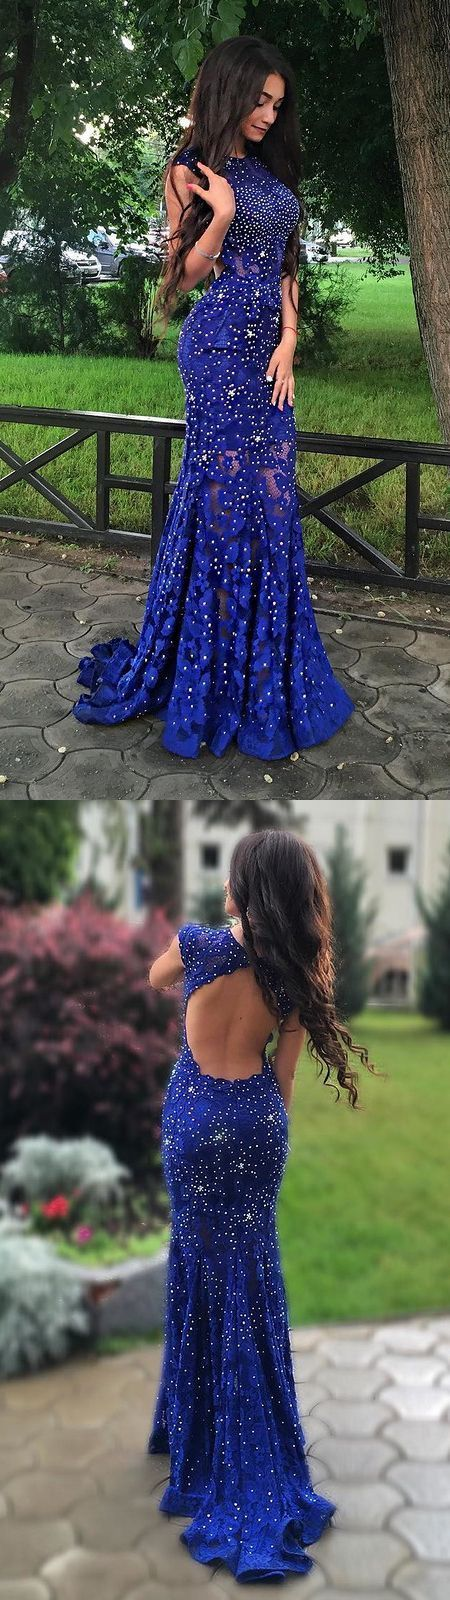 2017 Royal Blue Beading Mermaid Style Prom Dress Sexy Backless Evening Dress